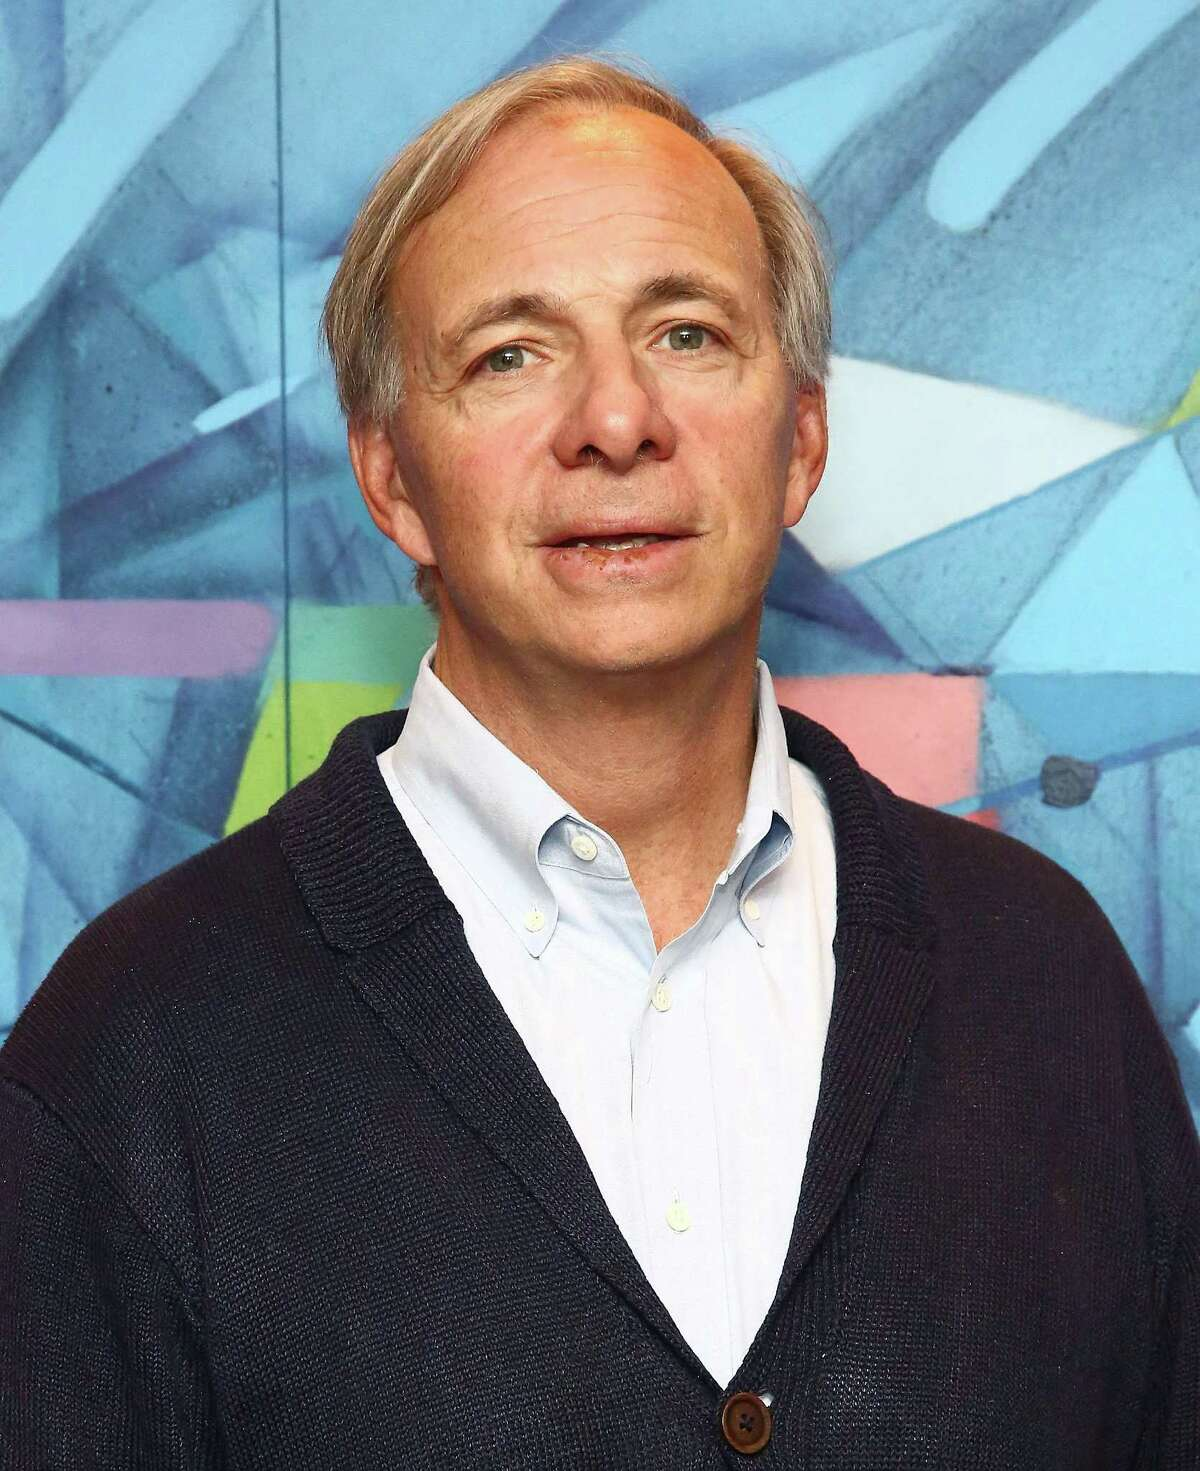 Ray Dalio - Greenwich Rank: 26 out of 400 | Net worth: $17B | Industry: Hedge fundsSource: Forbes